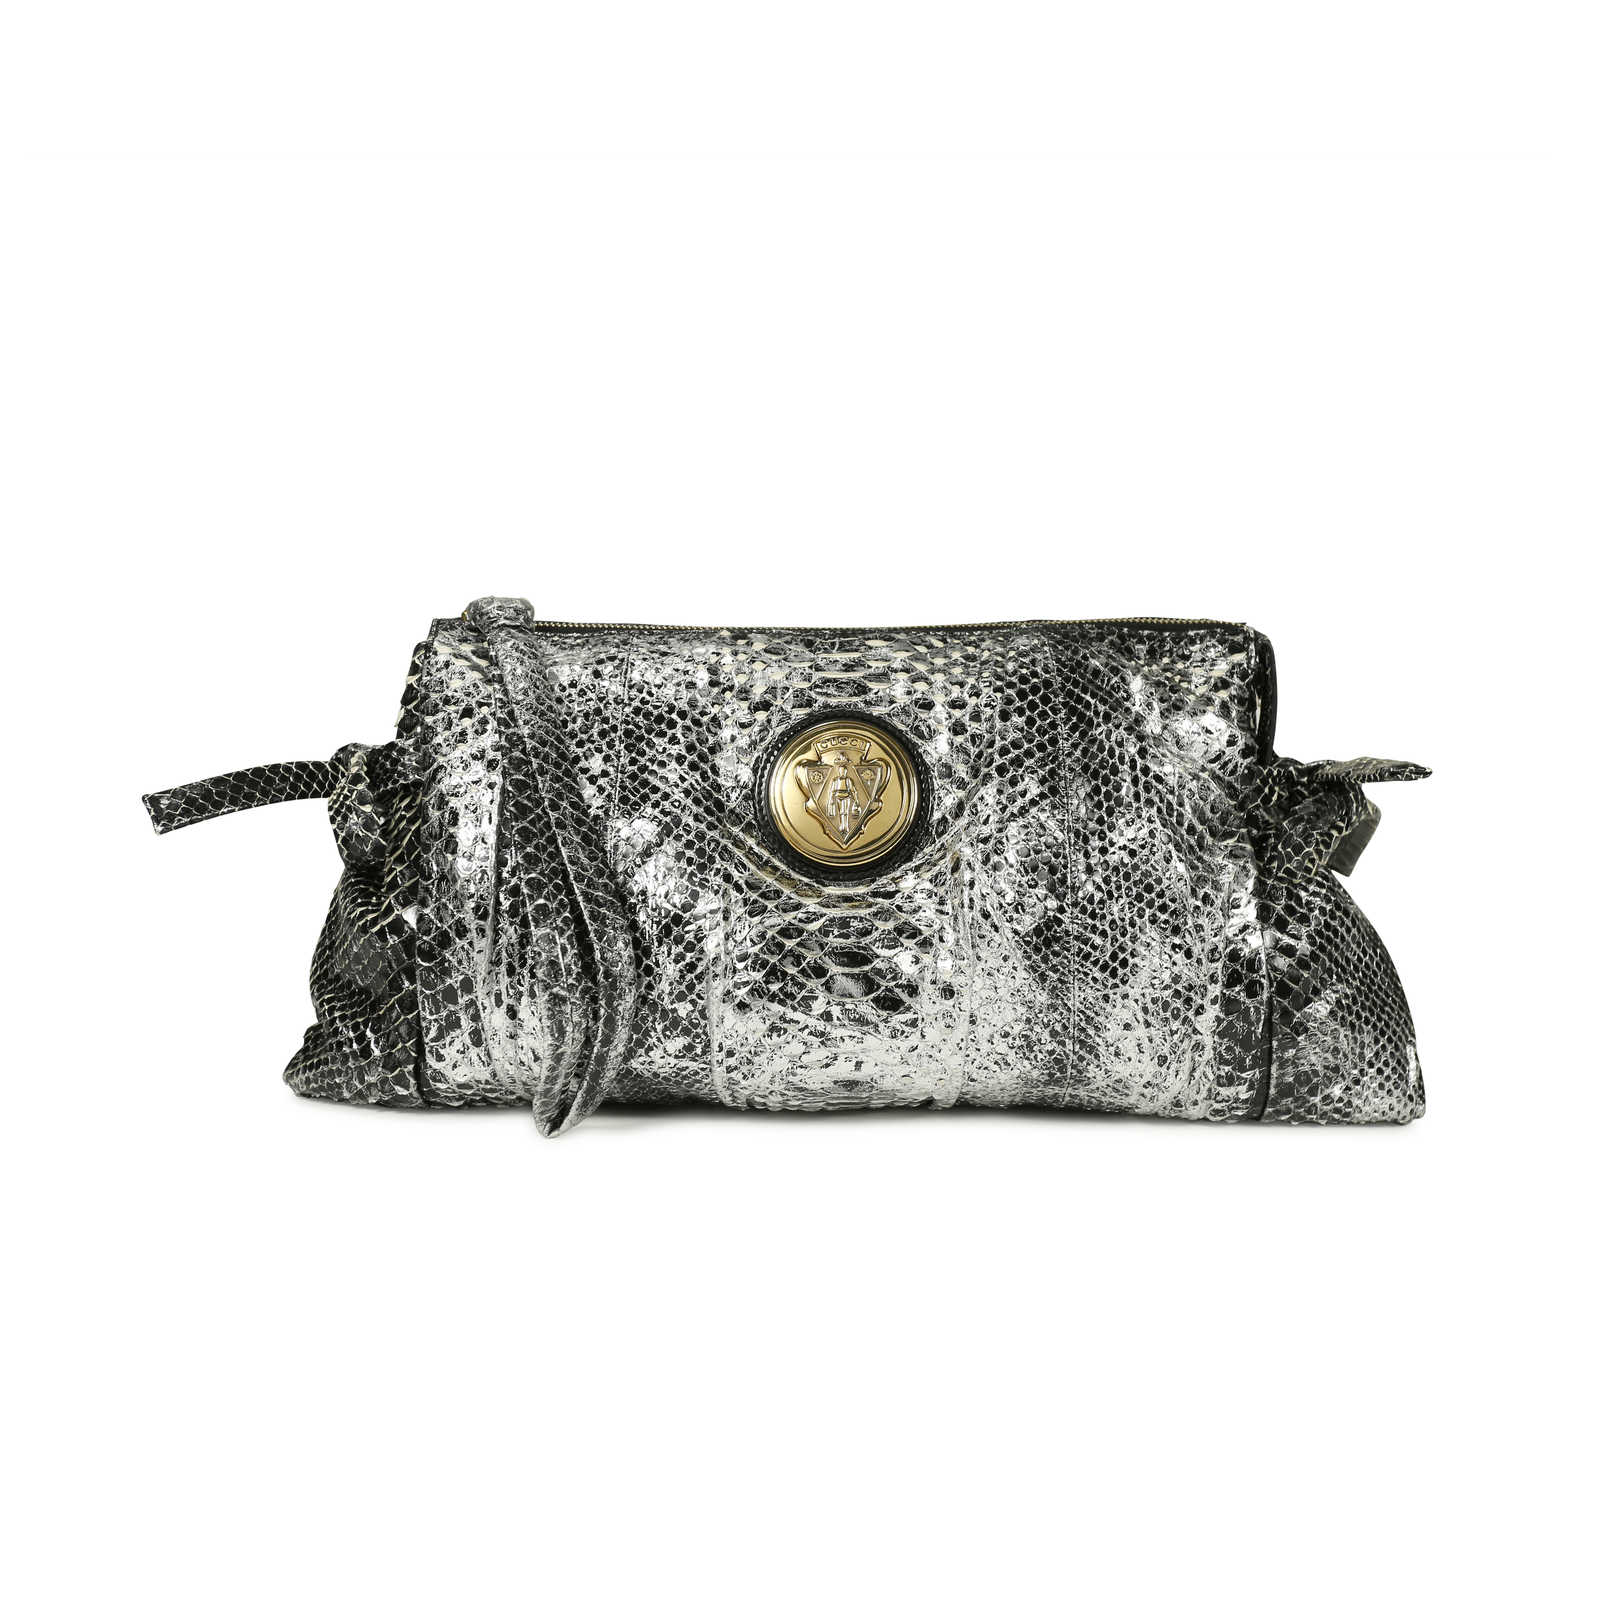 861b3b515 Authentic Second Hand Gucci Hysteria Clutch (PSS-148-00003) - Thumbnail 0  ...